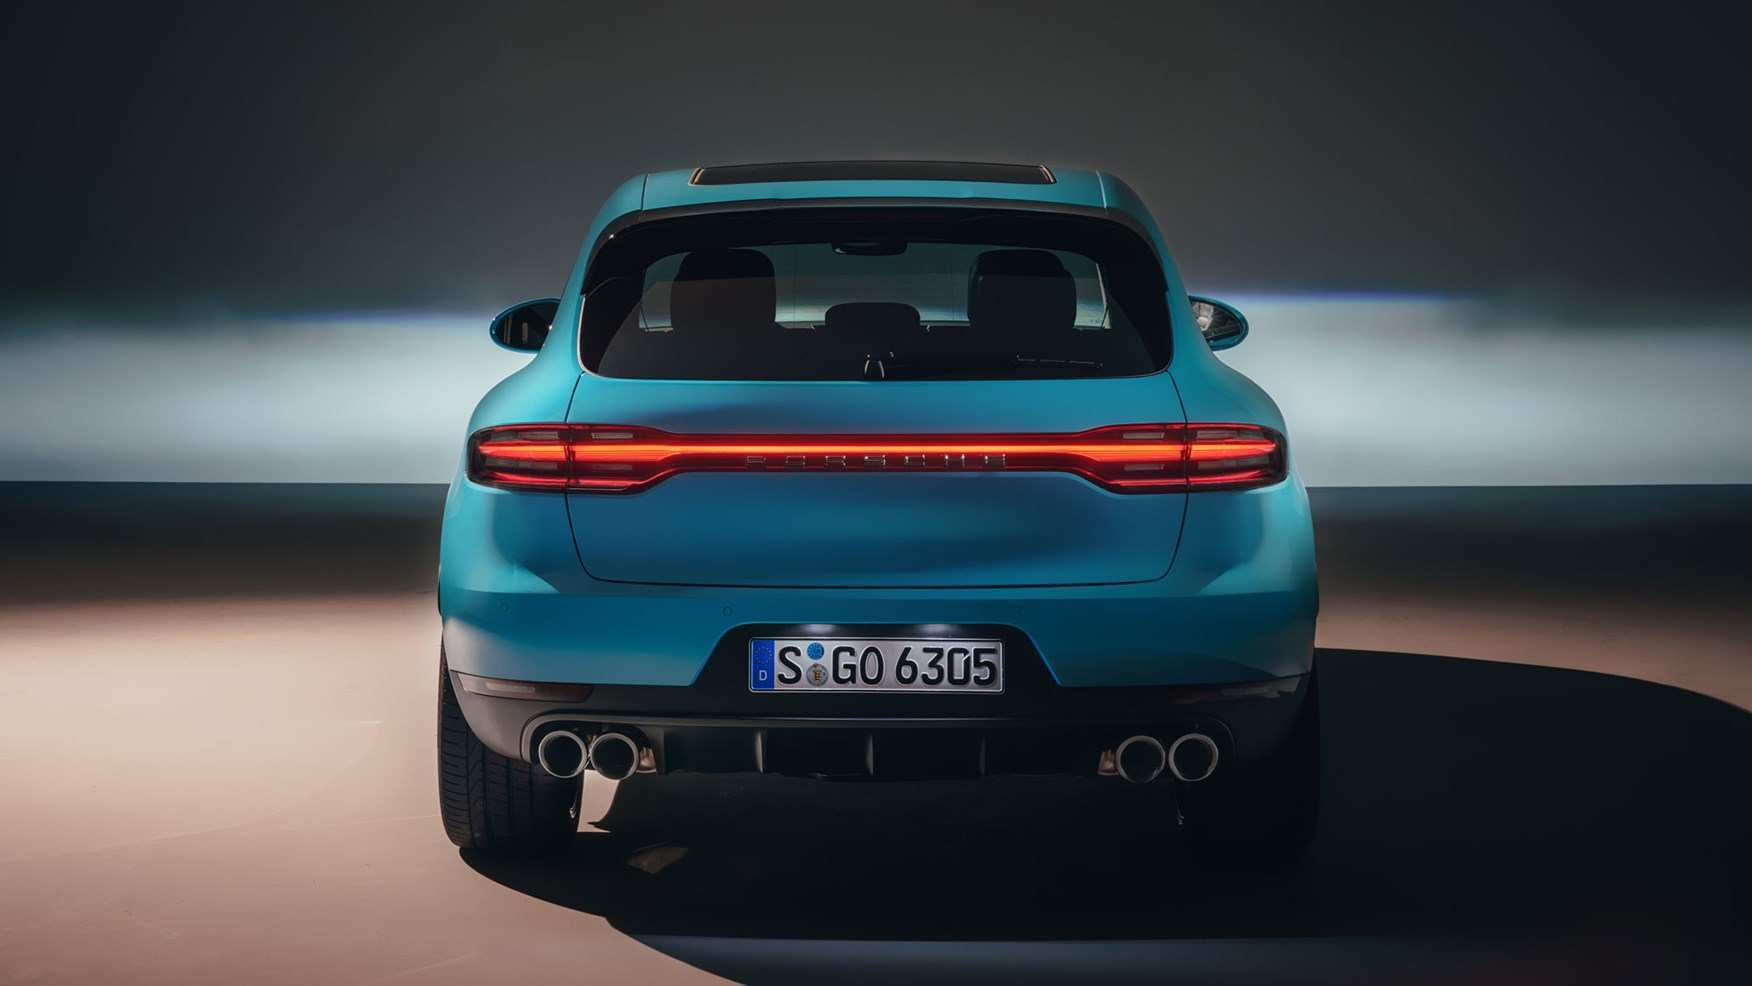 59 Great 2019 Porsche Macan Interior by 2019 Porsche Macan